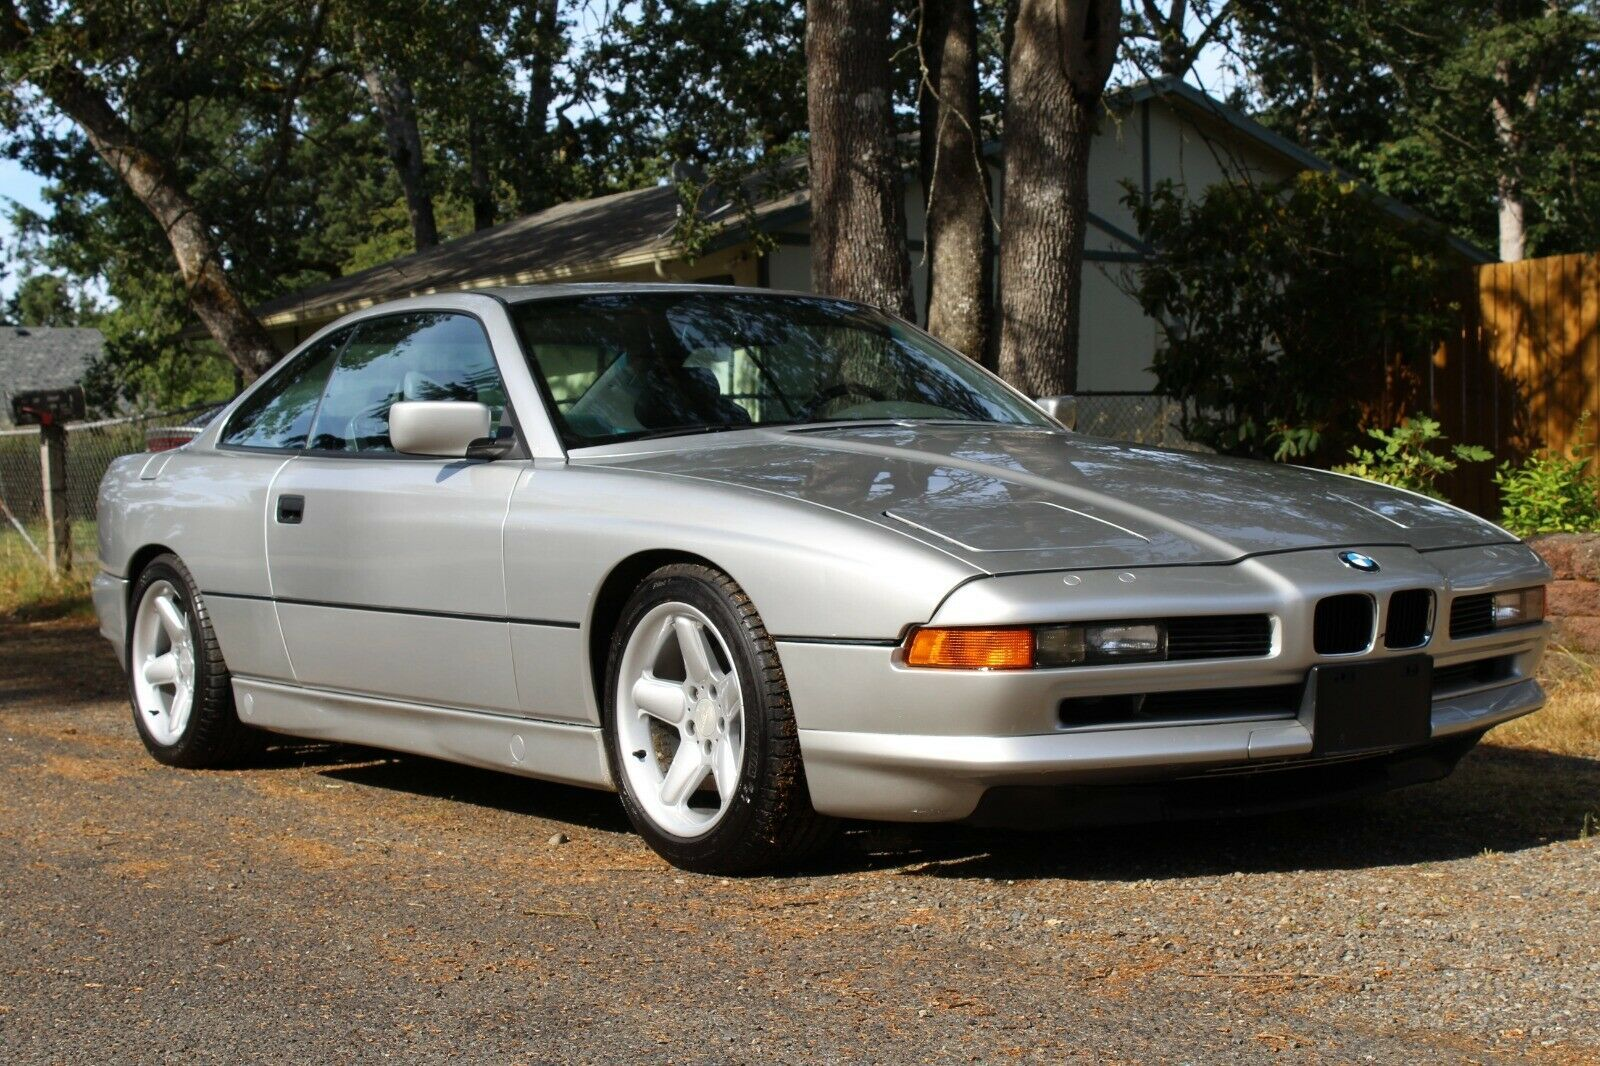 Best Cheap V-12 Cars You Can Buy - Road & Track